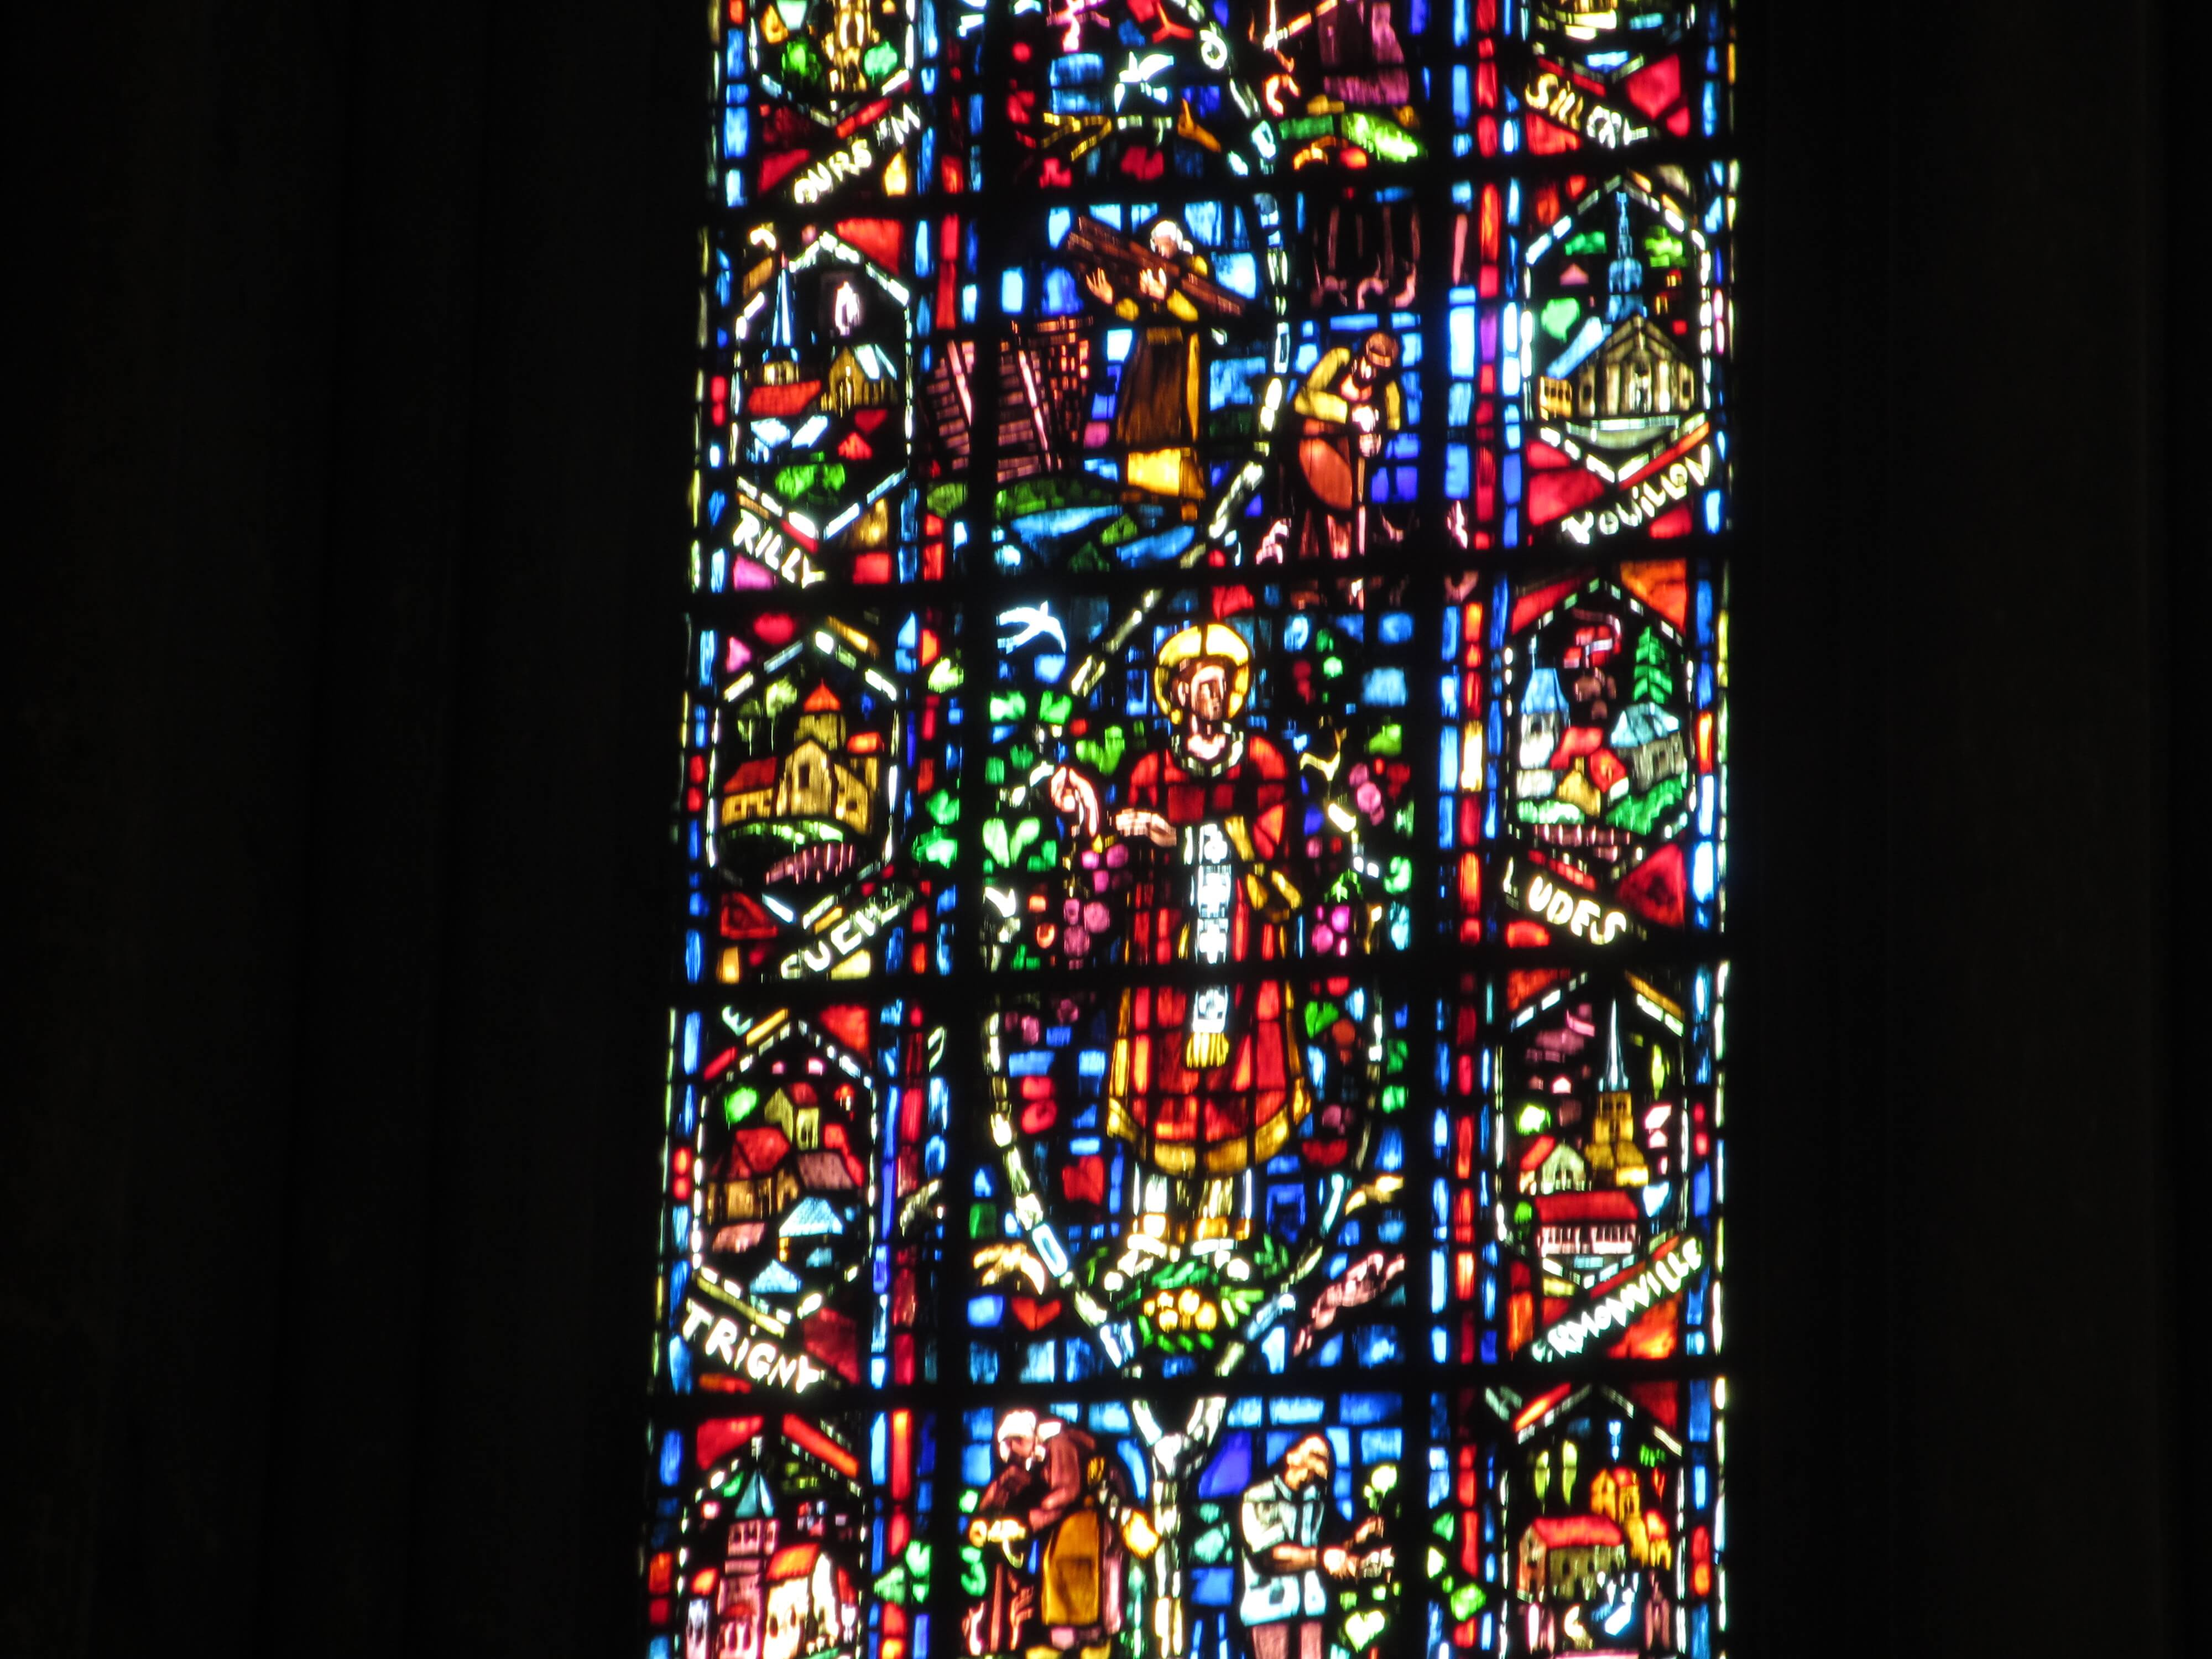 One of three transept windows, built after WW1 in celebration of champagne